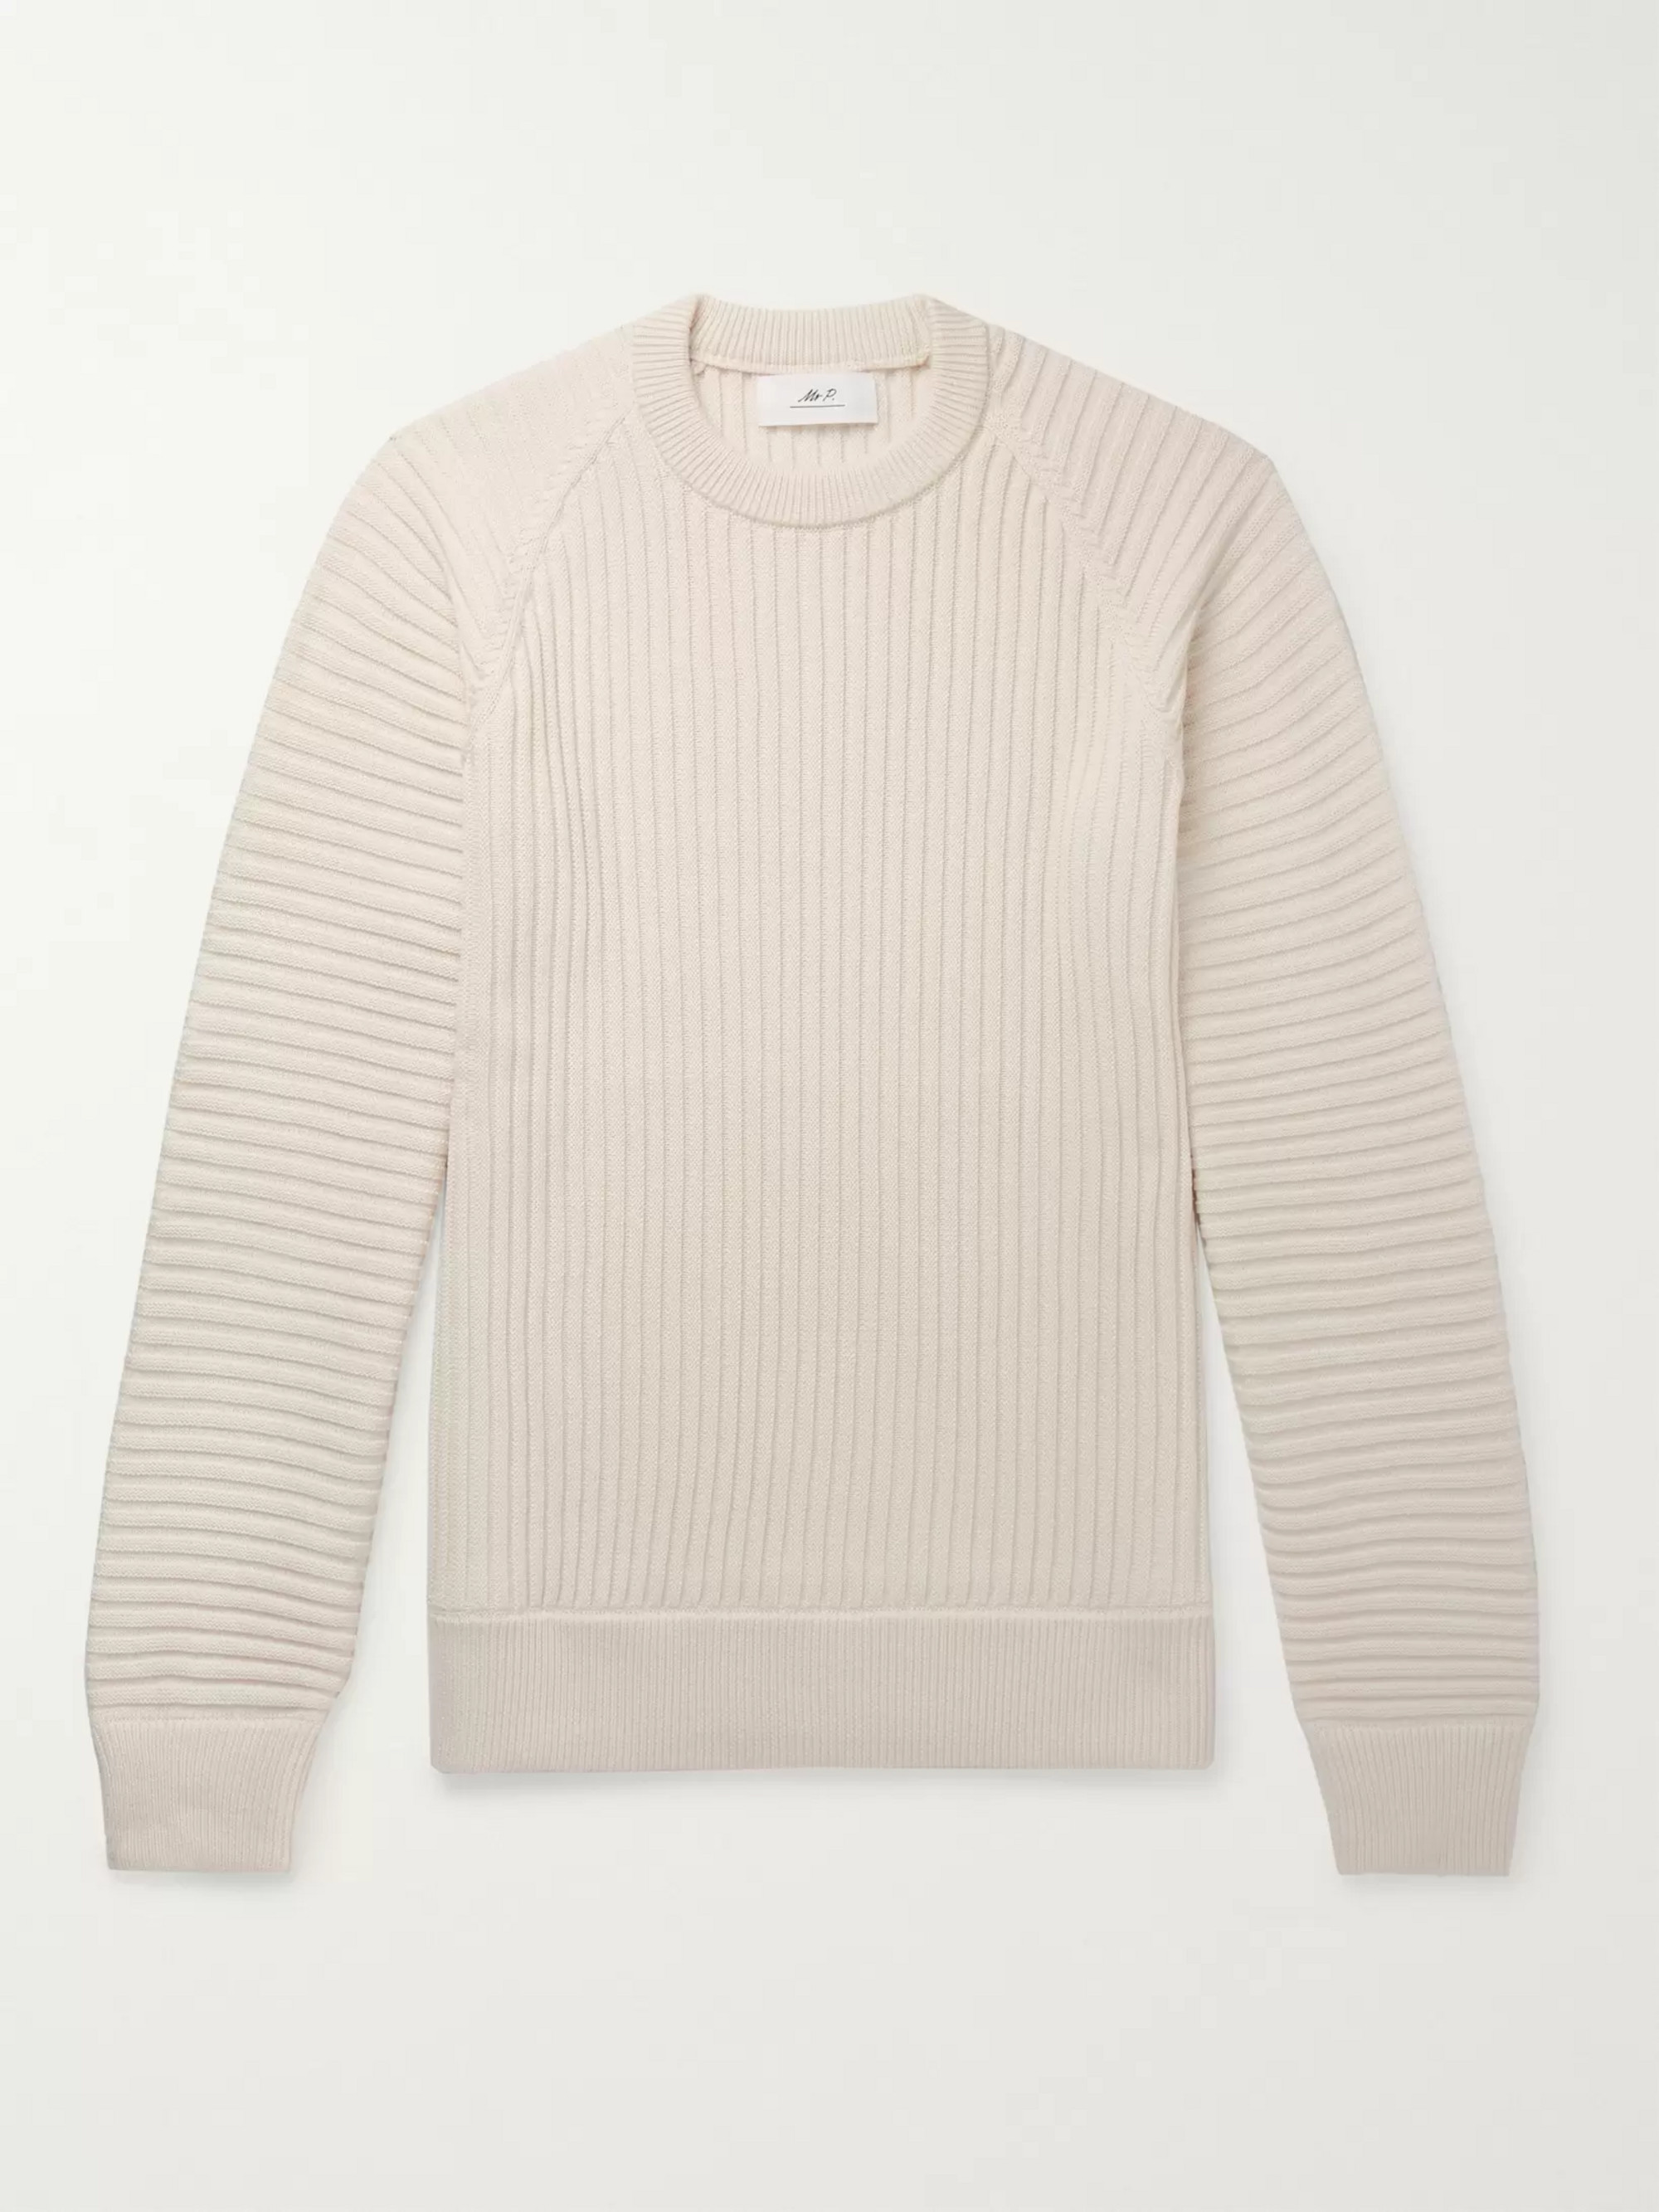 Mr P. Slim-Fit Ribbed Merino Wool Sweater